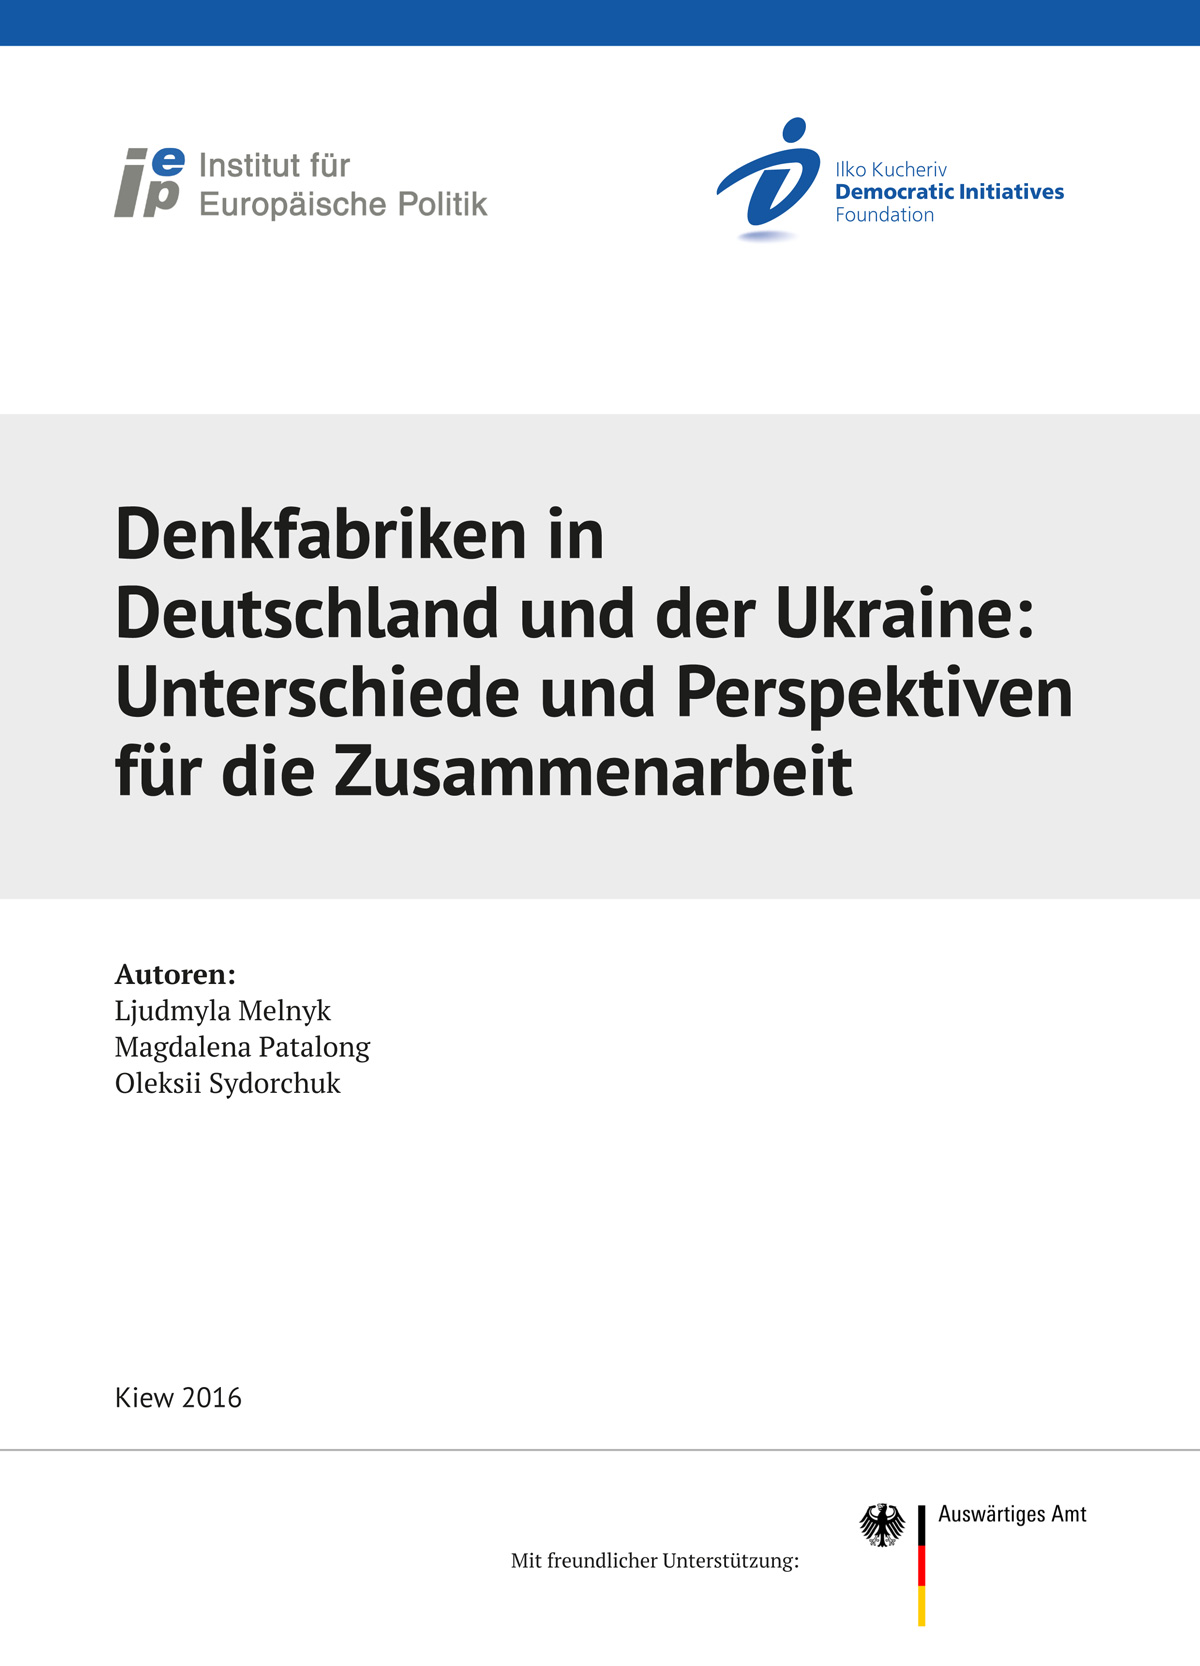 """Study on """"Think Tanks in Germany and Ukraine: Differences"""